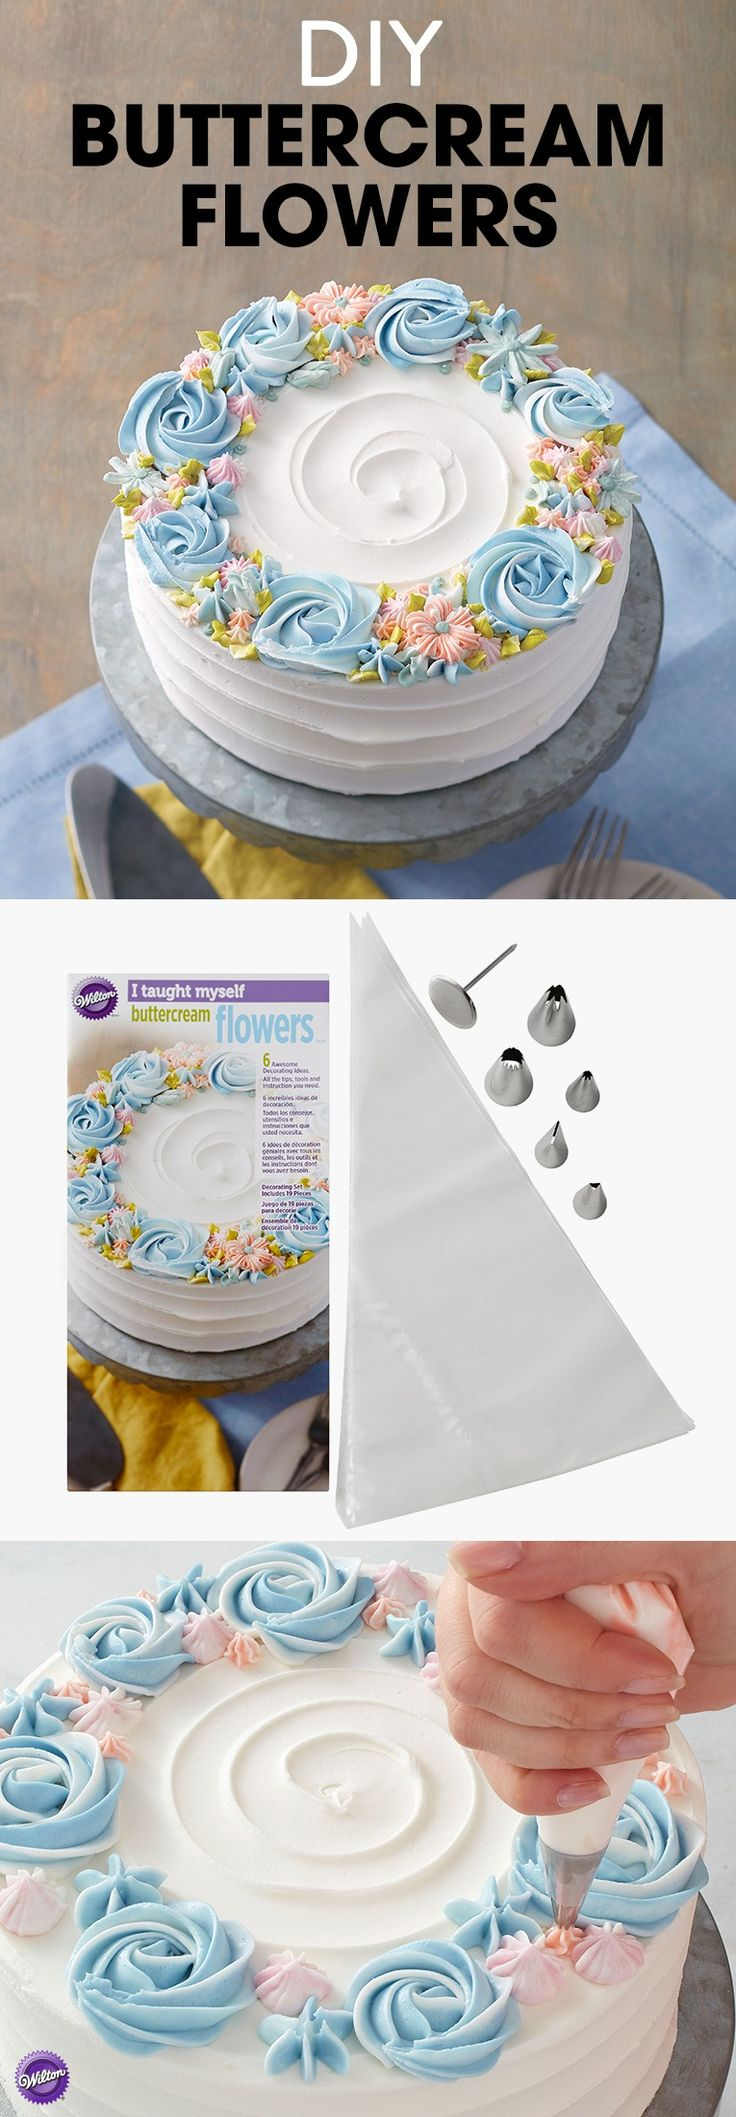 DIY Buttercream Flowers - Teach yourself how to make buttercream flowers with this step-by-step book set that shows you how with complete instructions and color photos, plus all the tools you need to